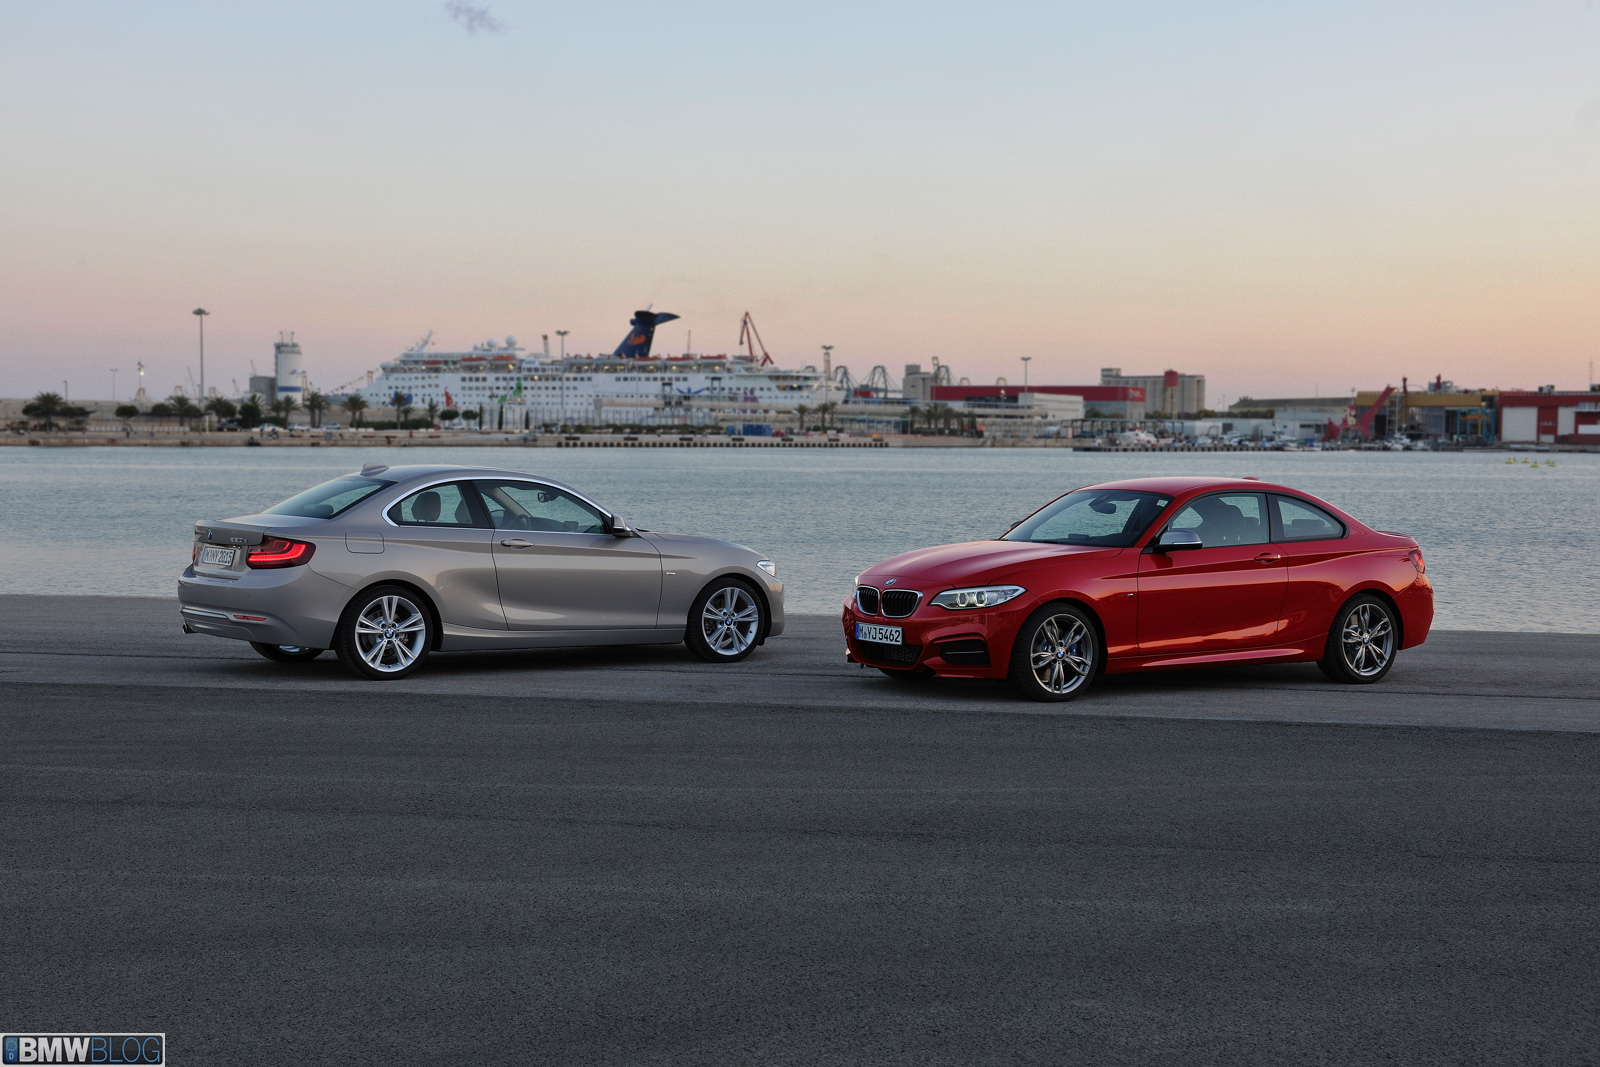 Bmw 2 Series Coupe Images High Resolution 30 750x500